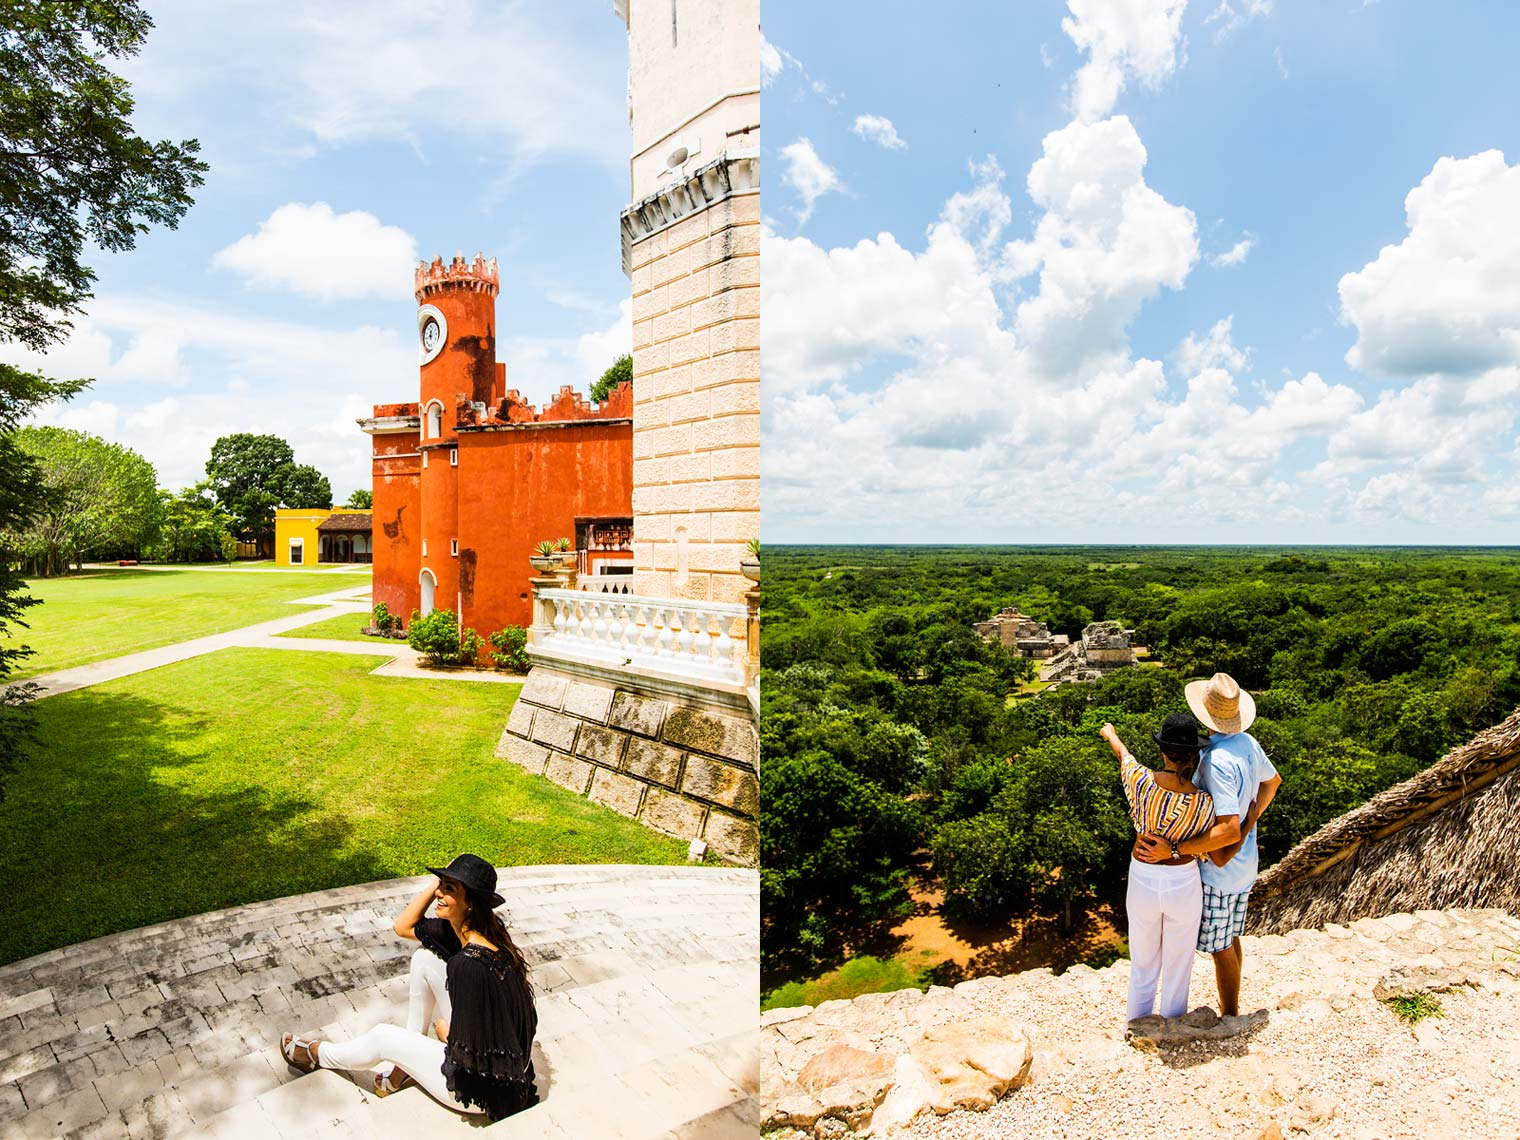 028-Chris-Hunt-Travel-Photography-Mexico-Yucatan-Hacienda-Millet-0604